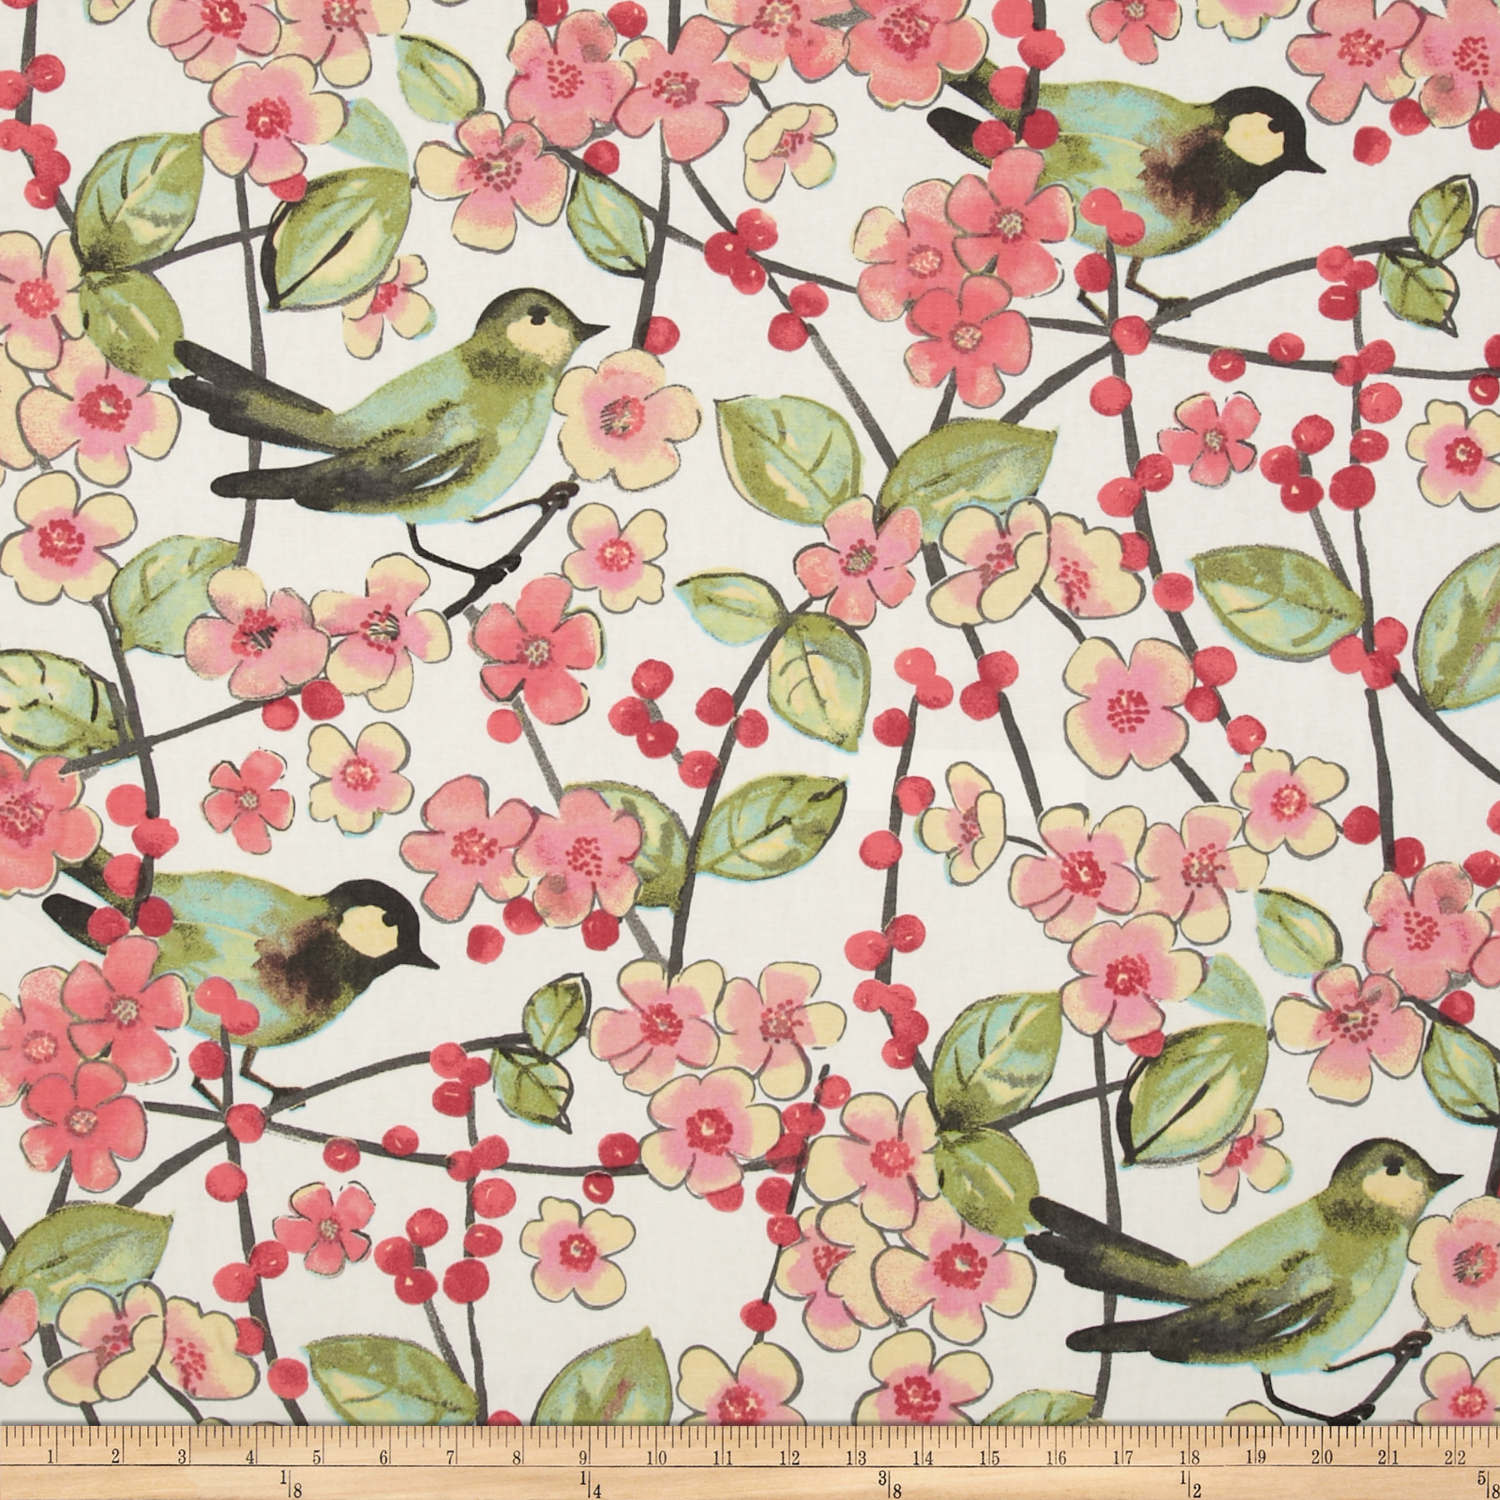 Waverly In the Air Blossom Fabric